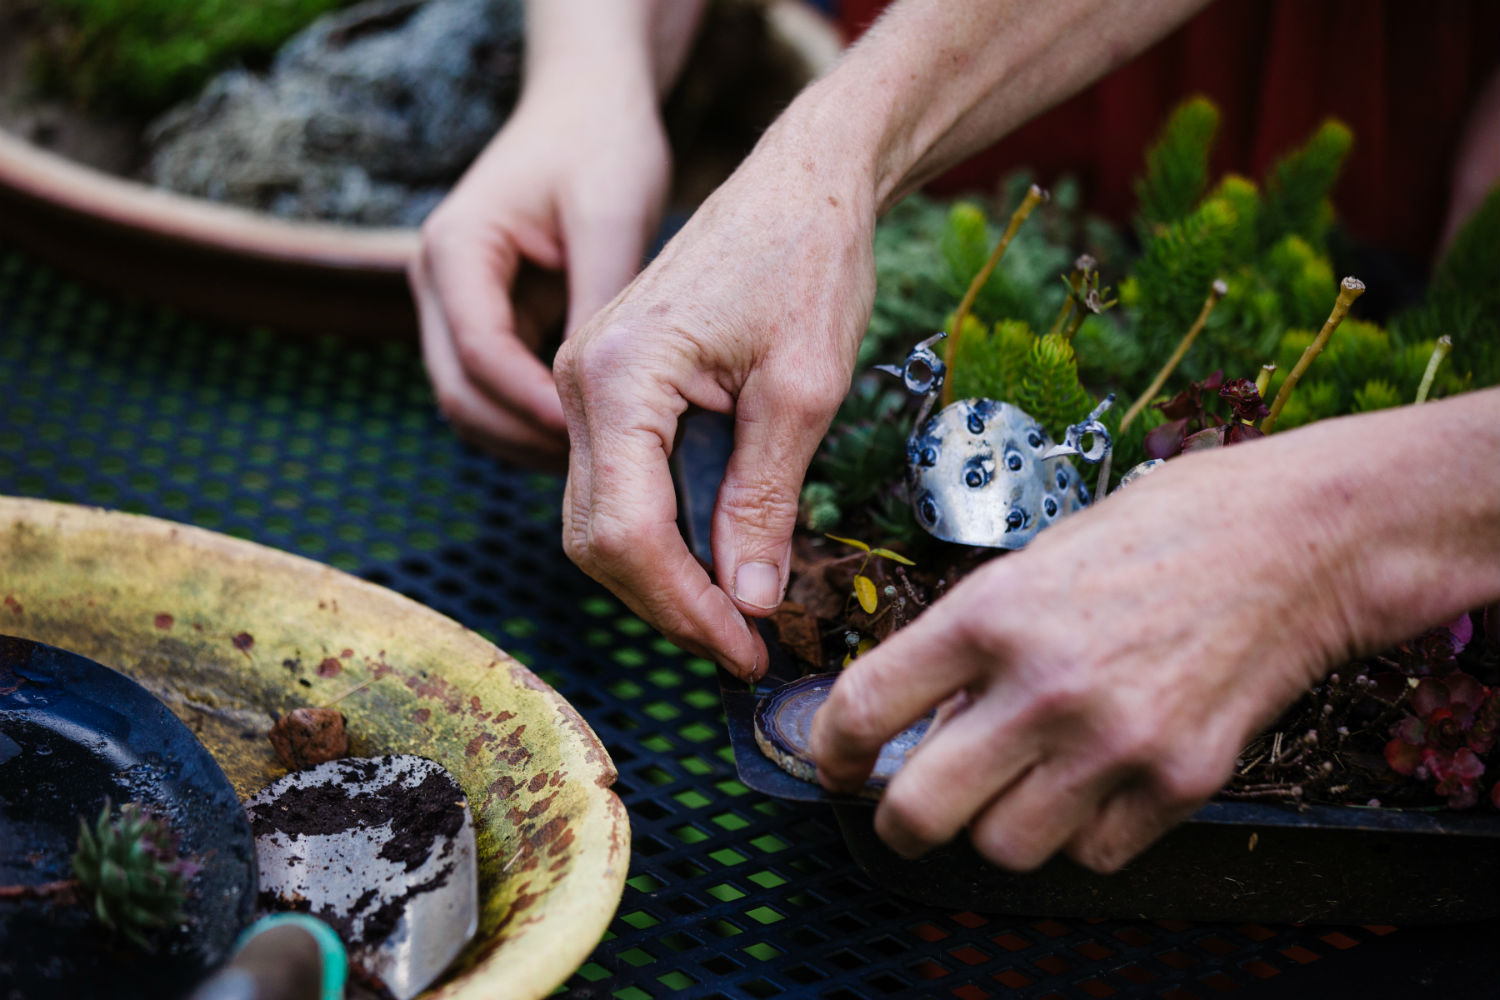 Care Partner Training connects you with your loved one through creaticve activities such as gardening